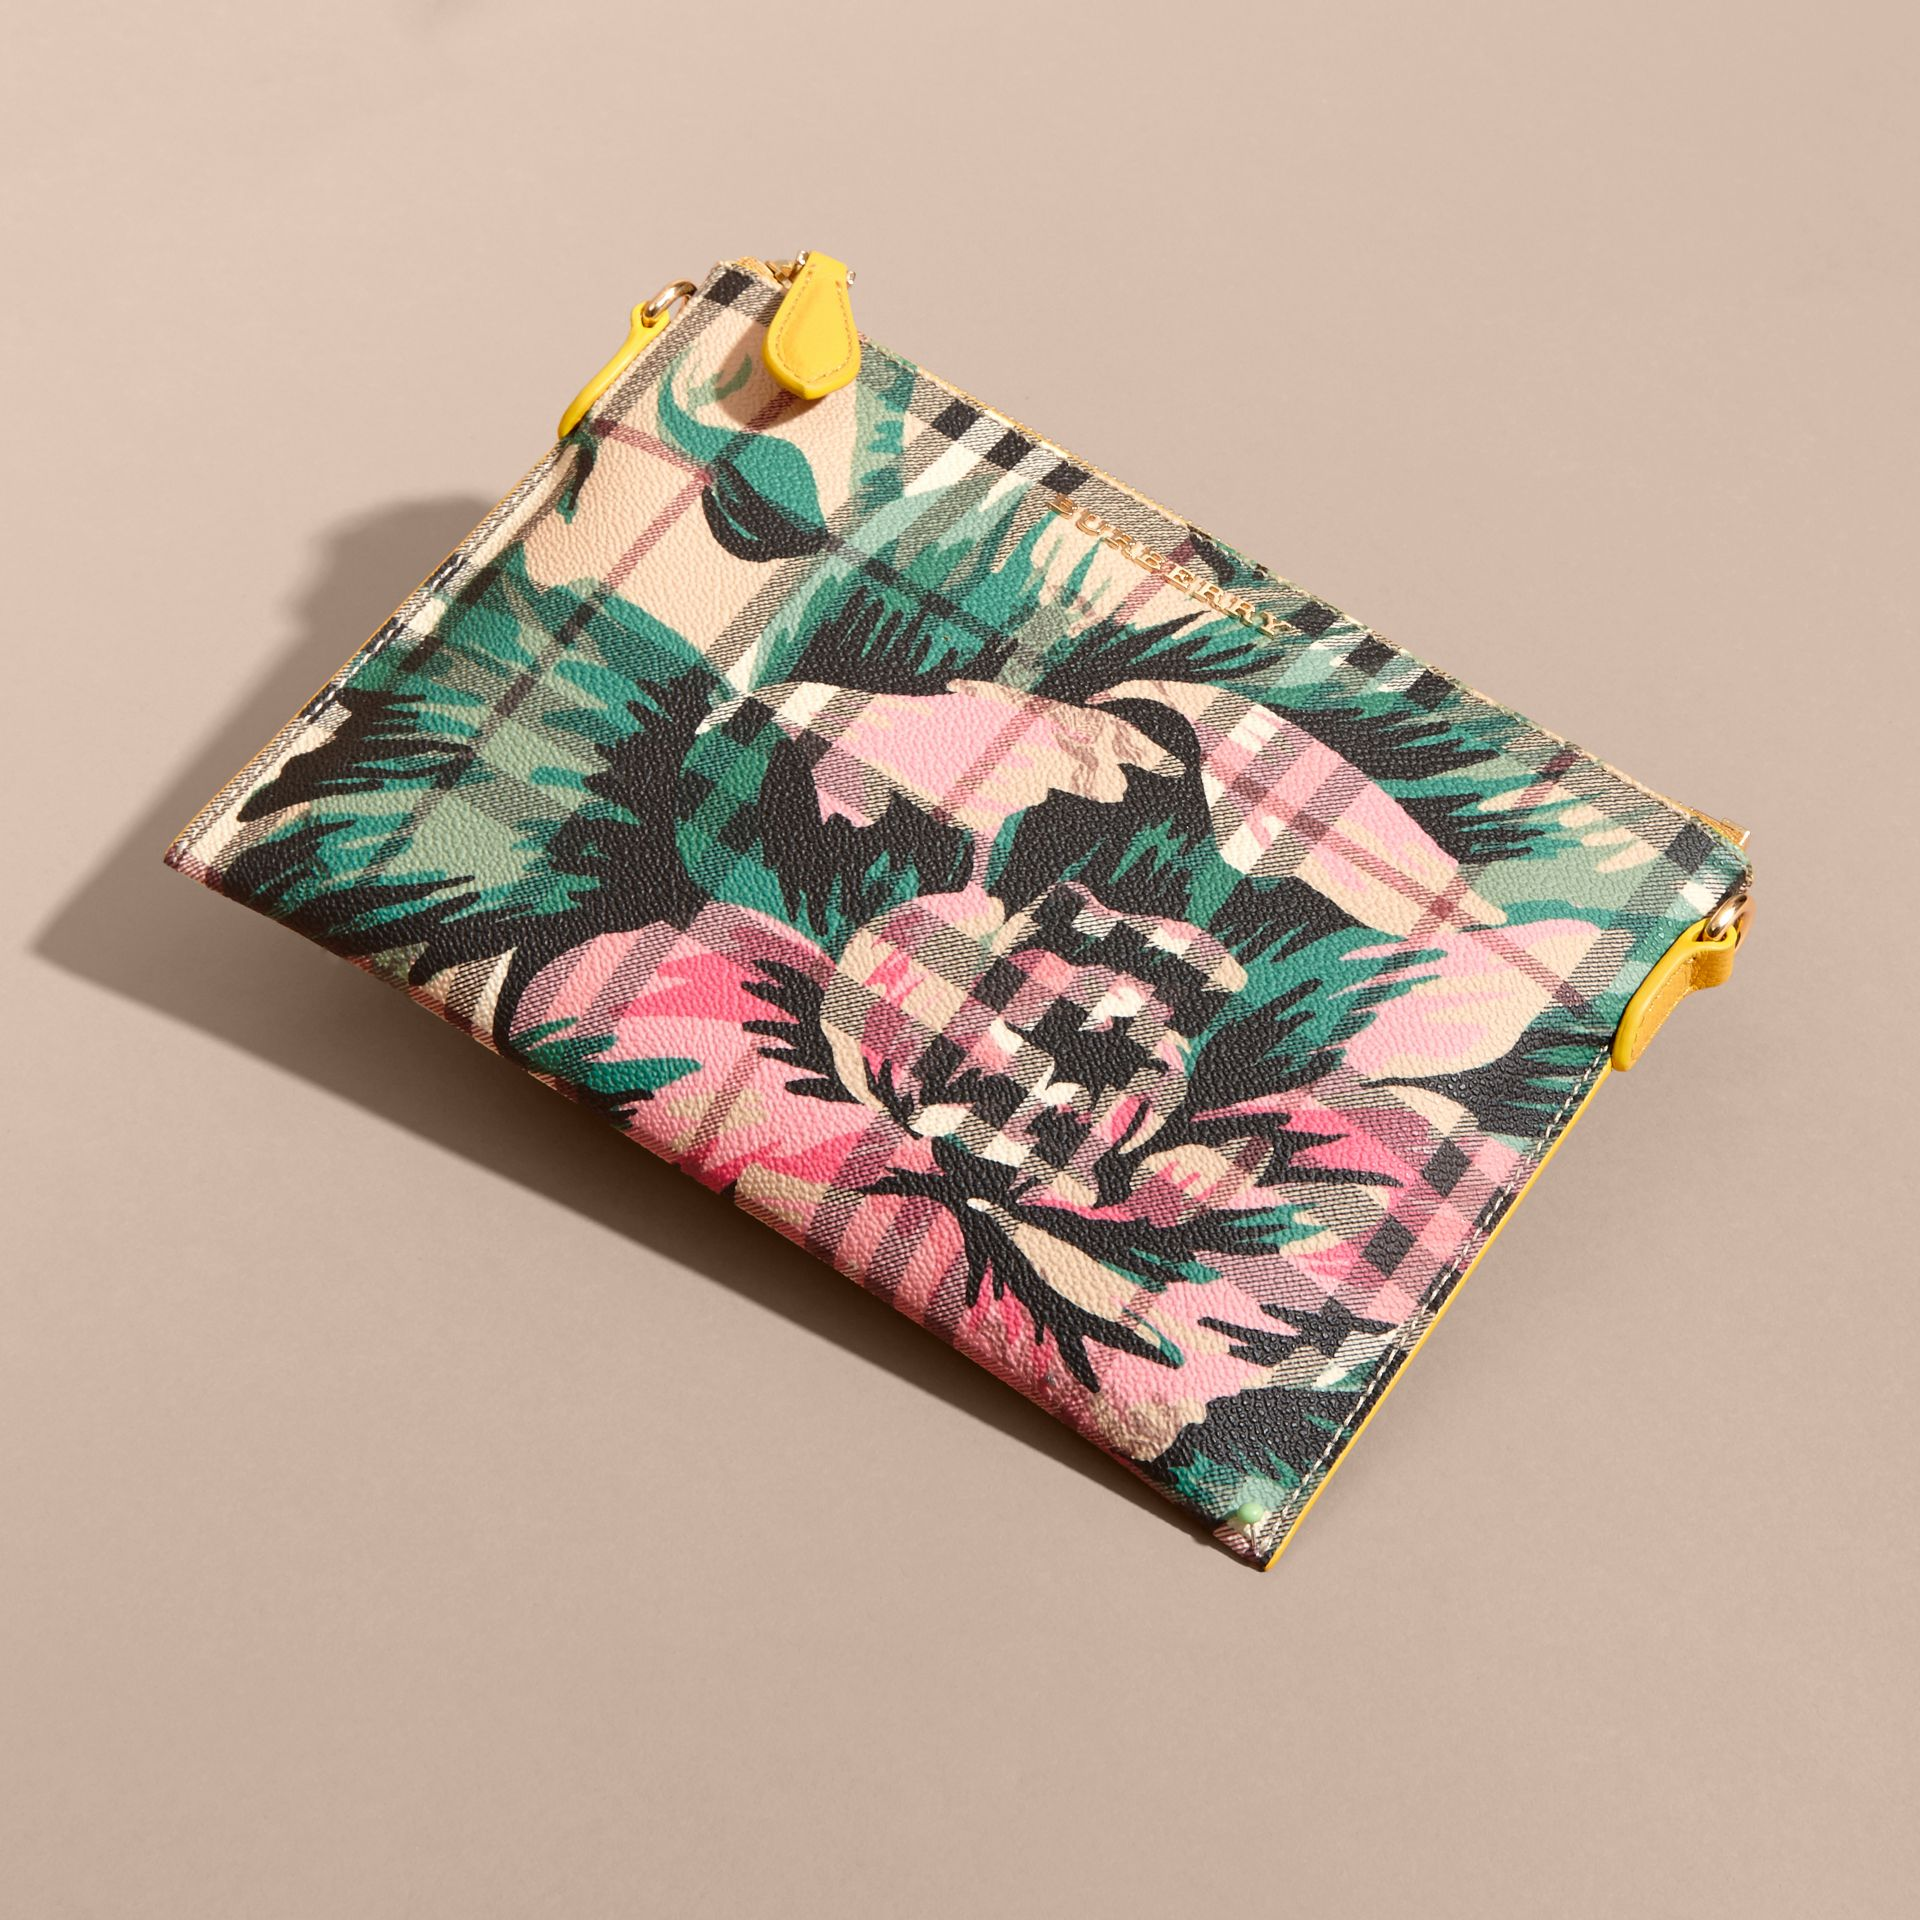 Peony Rose Print Haymarket Check and Leather Clutch Bag in Larch Yellow/emerald Green - gallery image 8